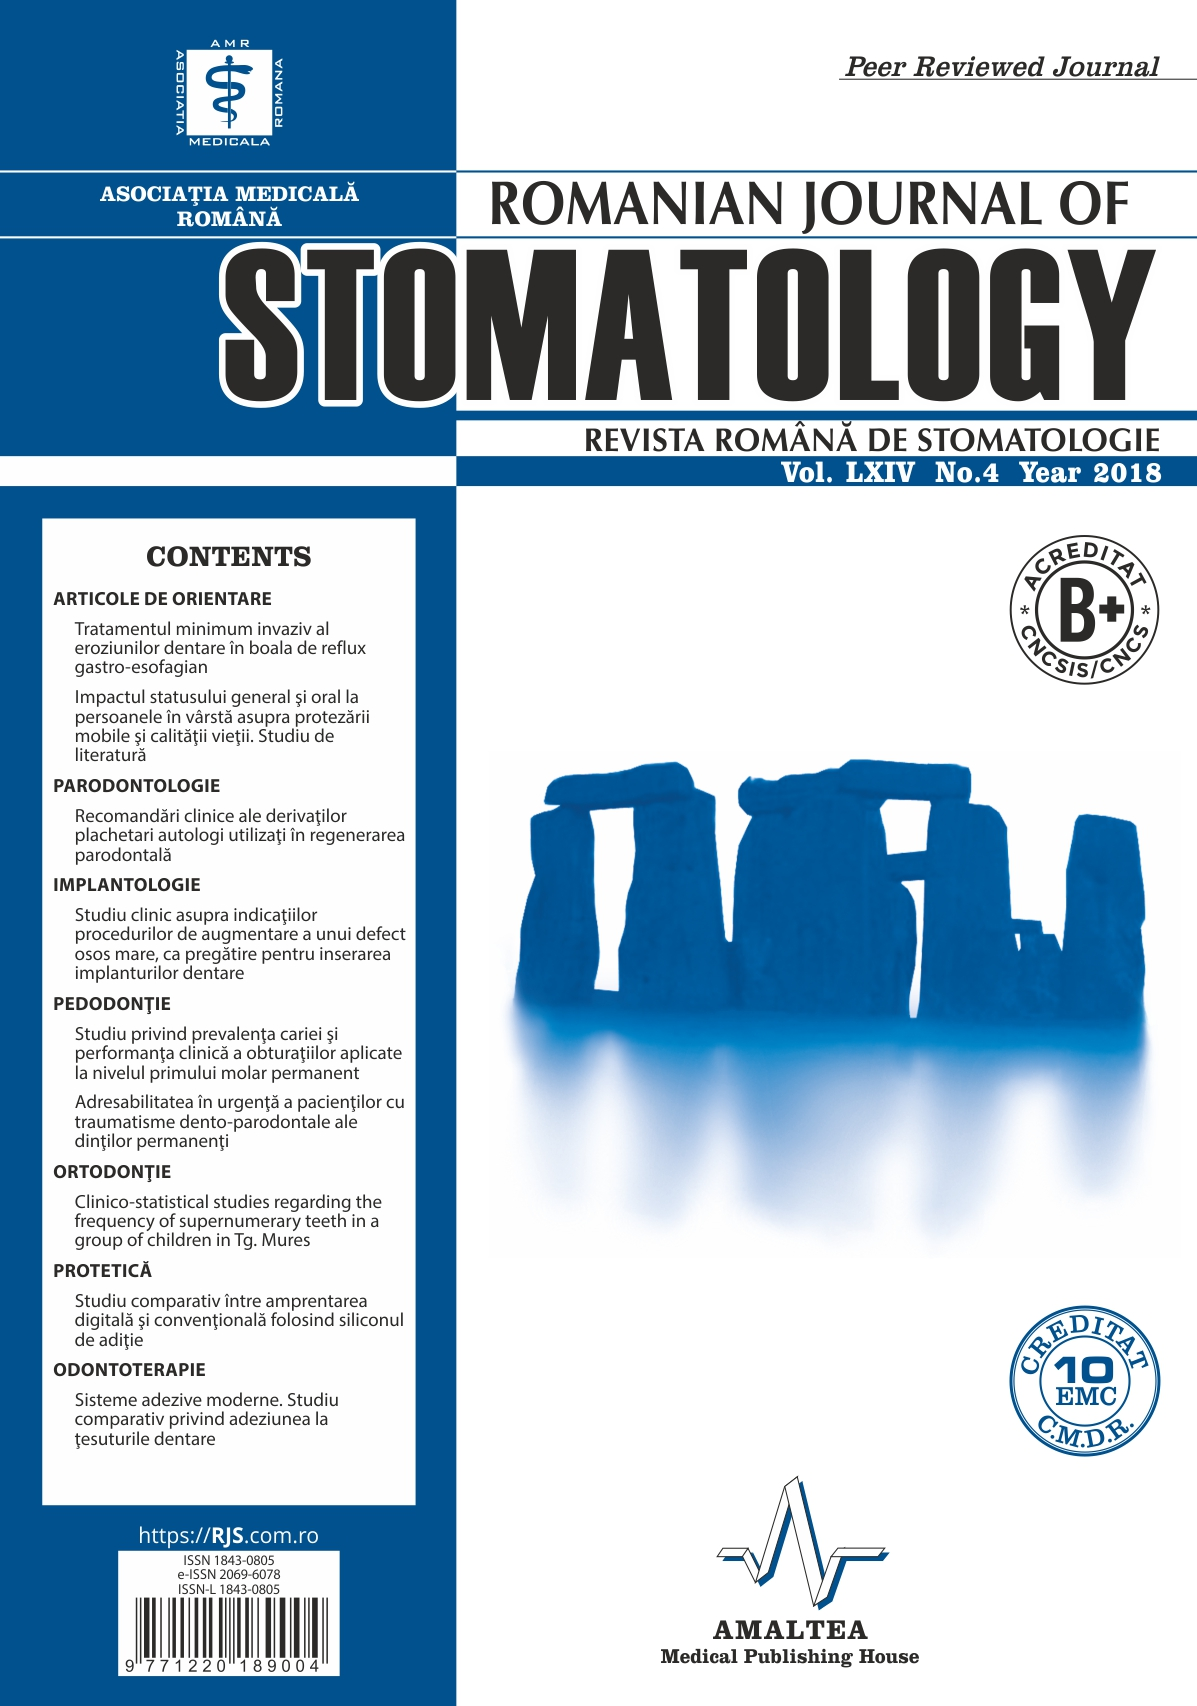 Revista Romana de STOMATOLOGIE - Romanian Journal of Stomatology, Vol. LXIV, Nr. 4, An 2018